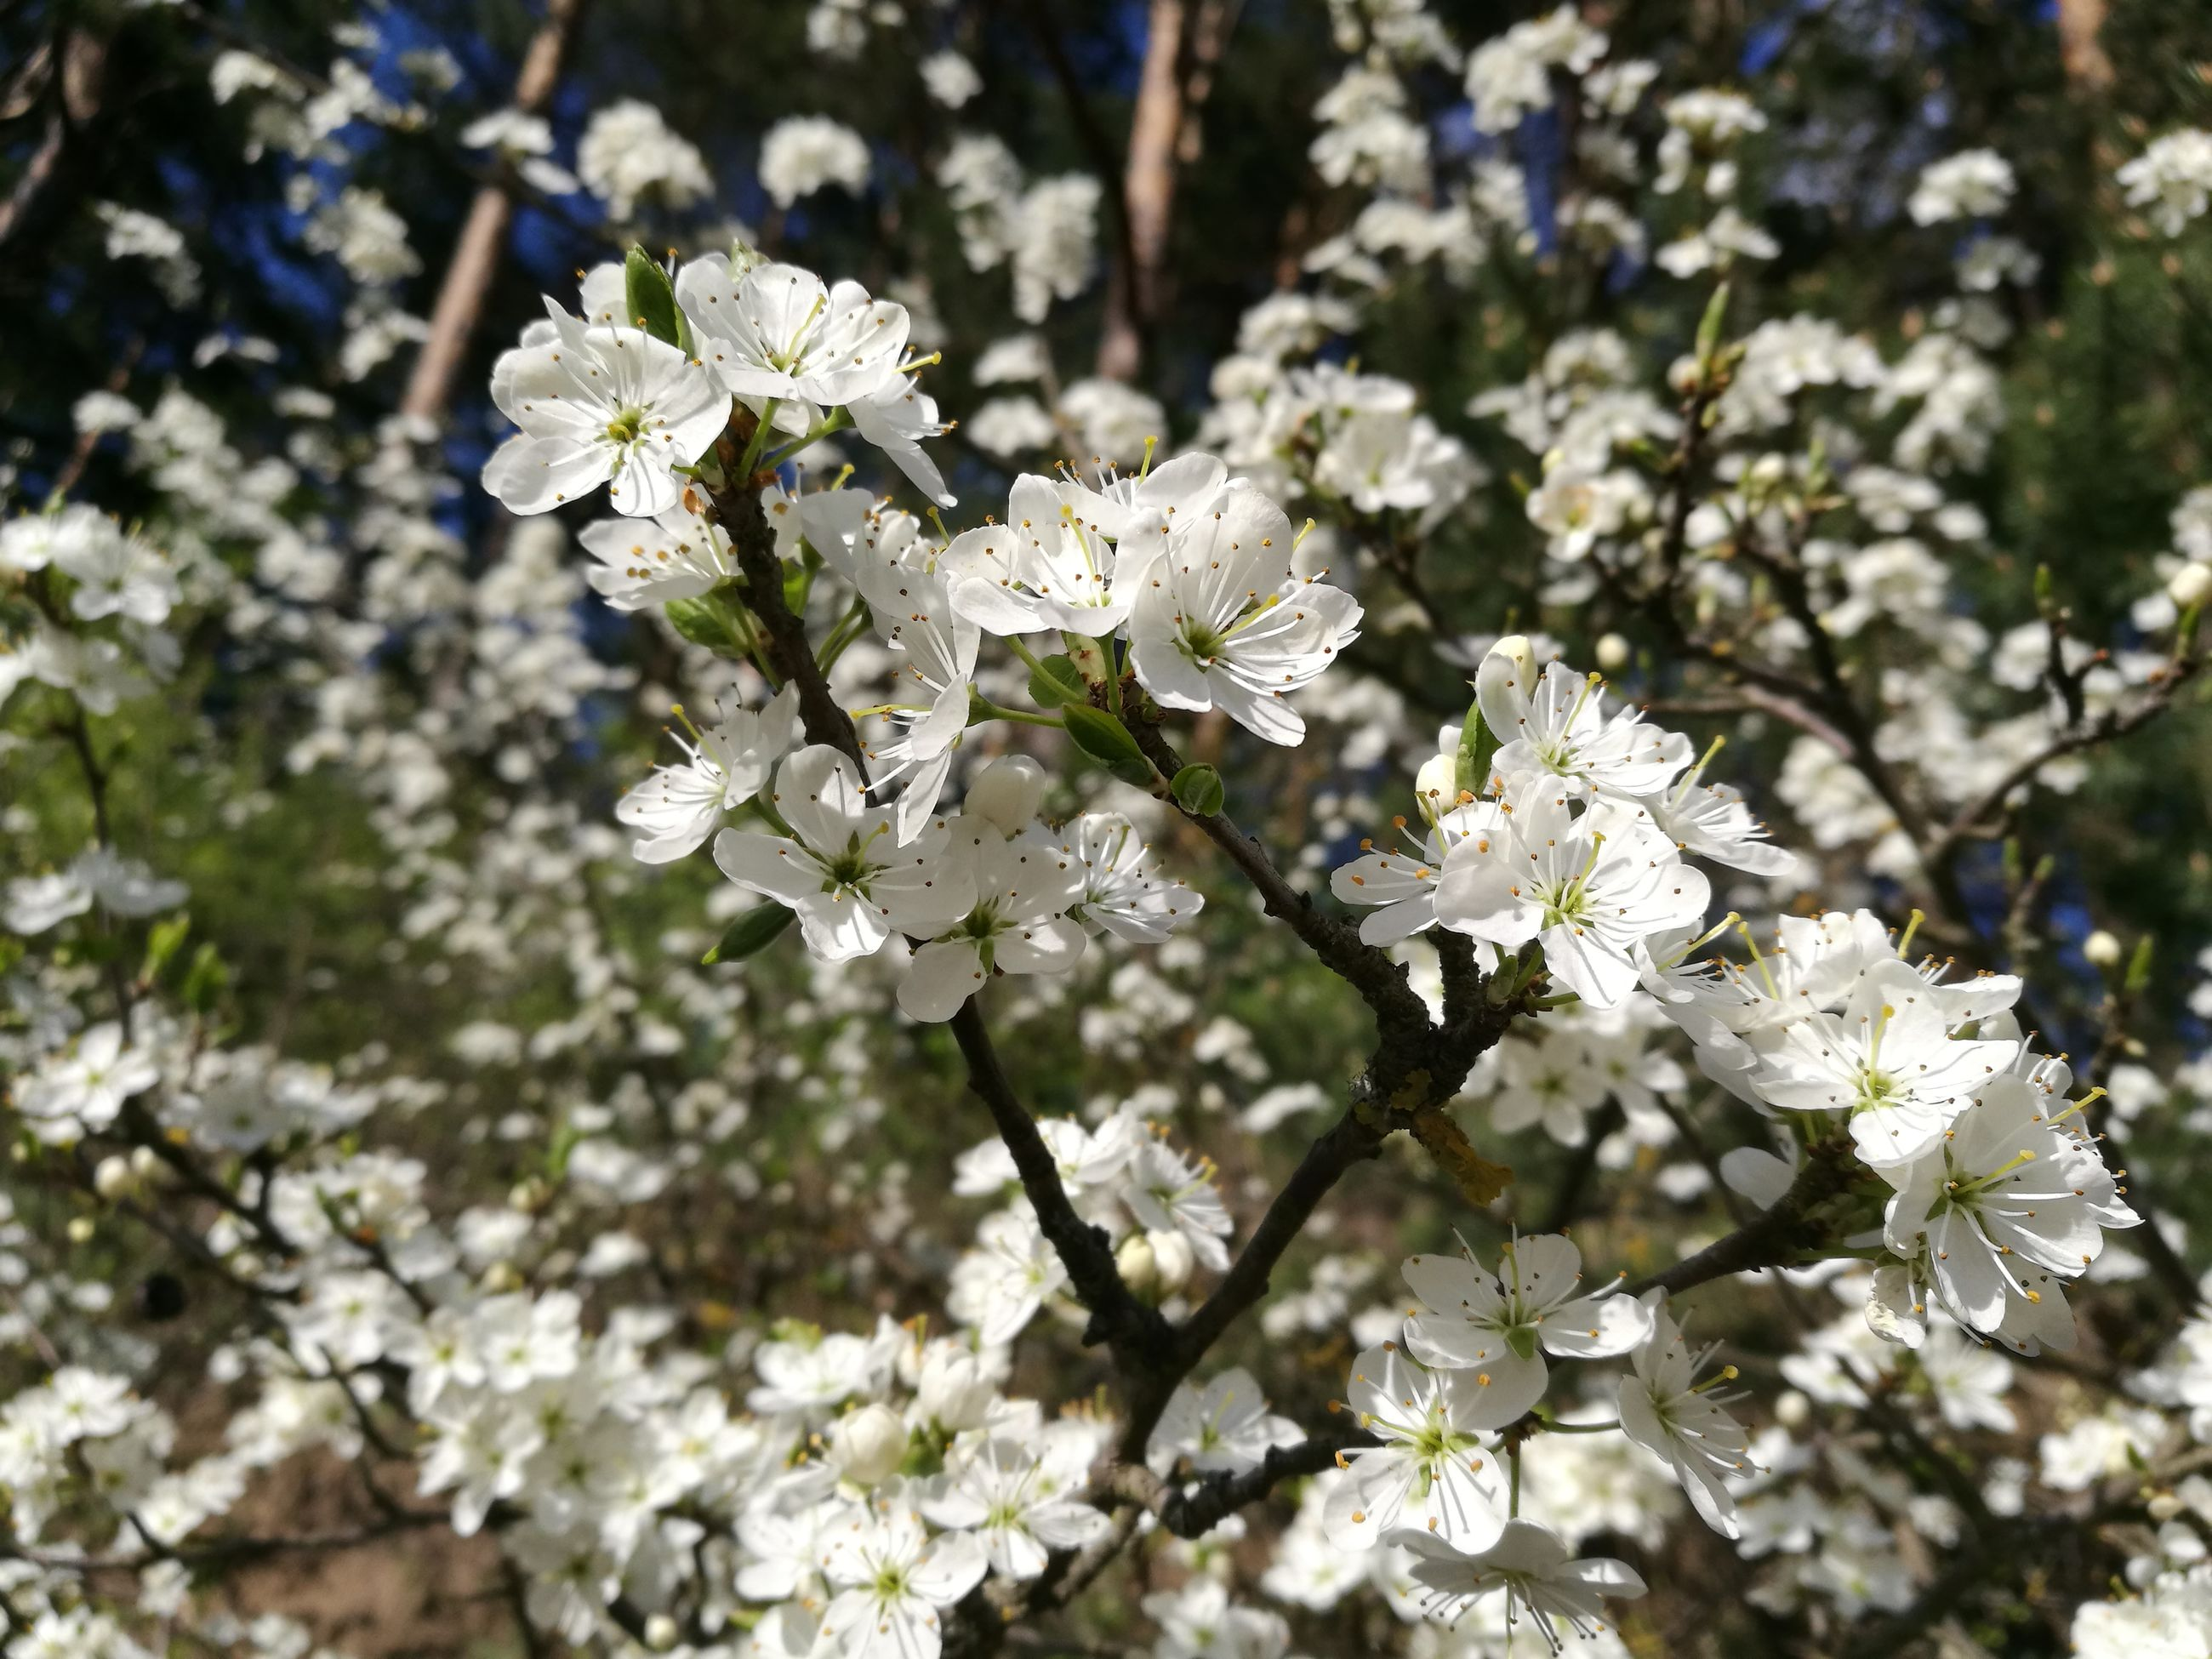 flower, white color, fragility, blossom, apple blossom, nature, growth, tree, botany, apple tree, beauty in nature, springtime, freshness, orchard, no people, branch, petal, day, close-up, flower head, outdoors, blooming